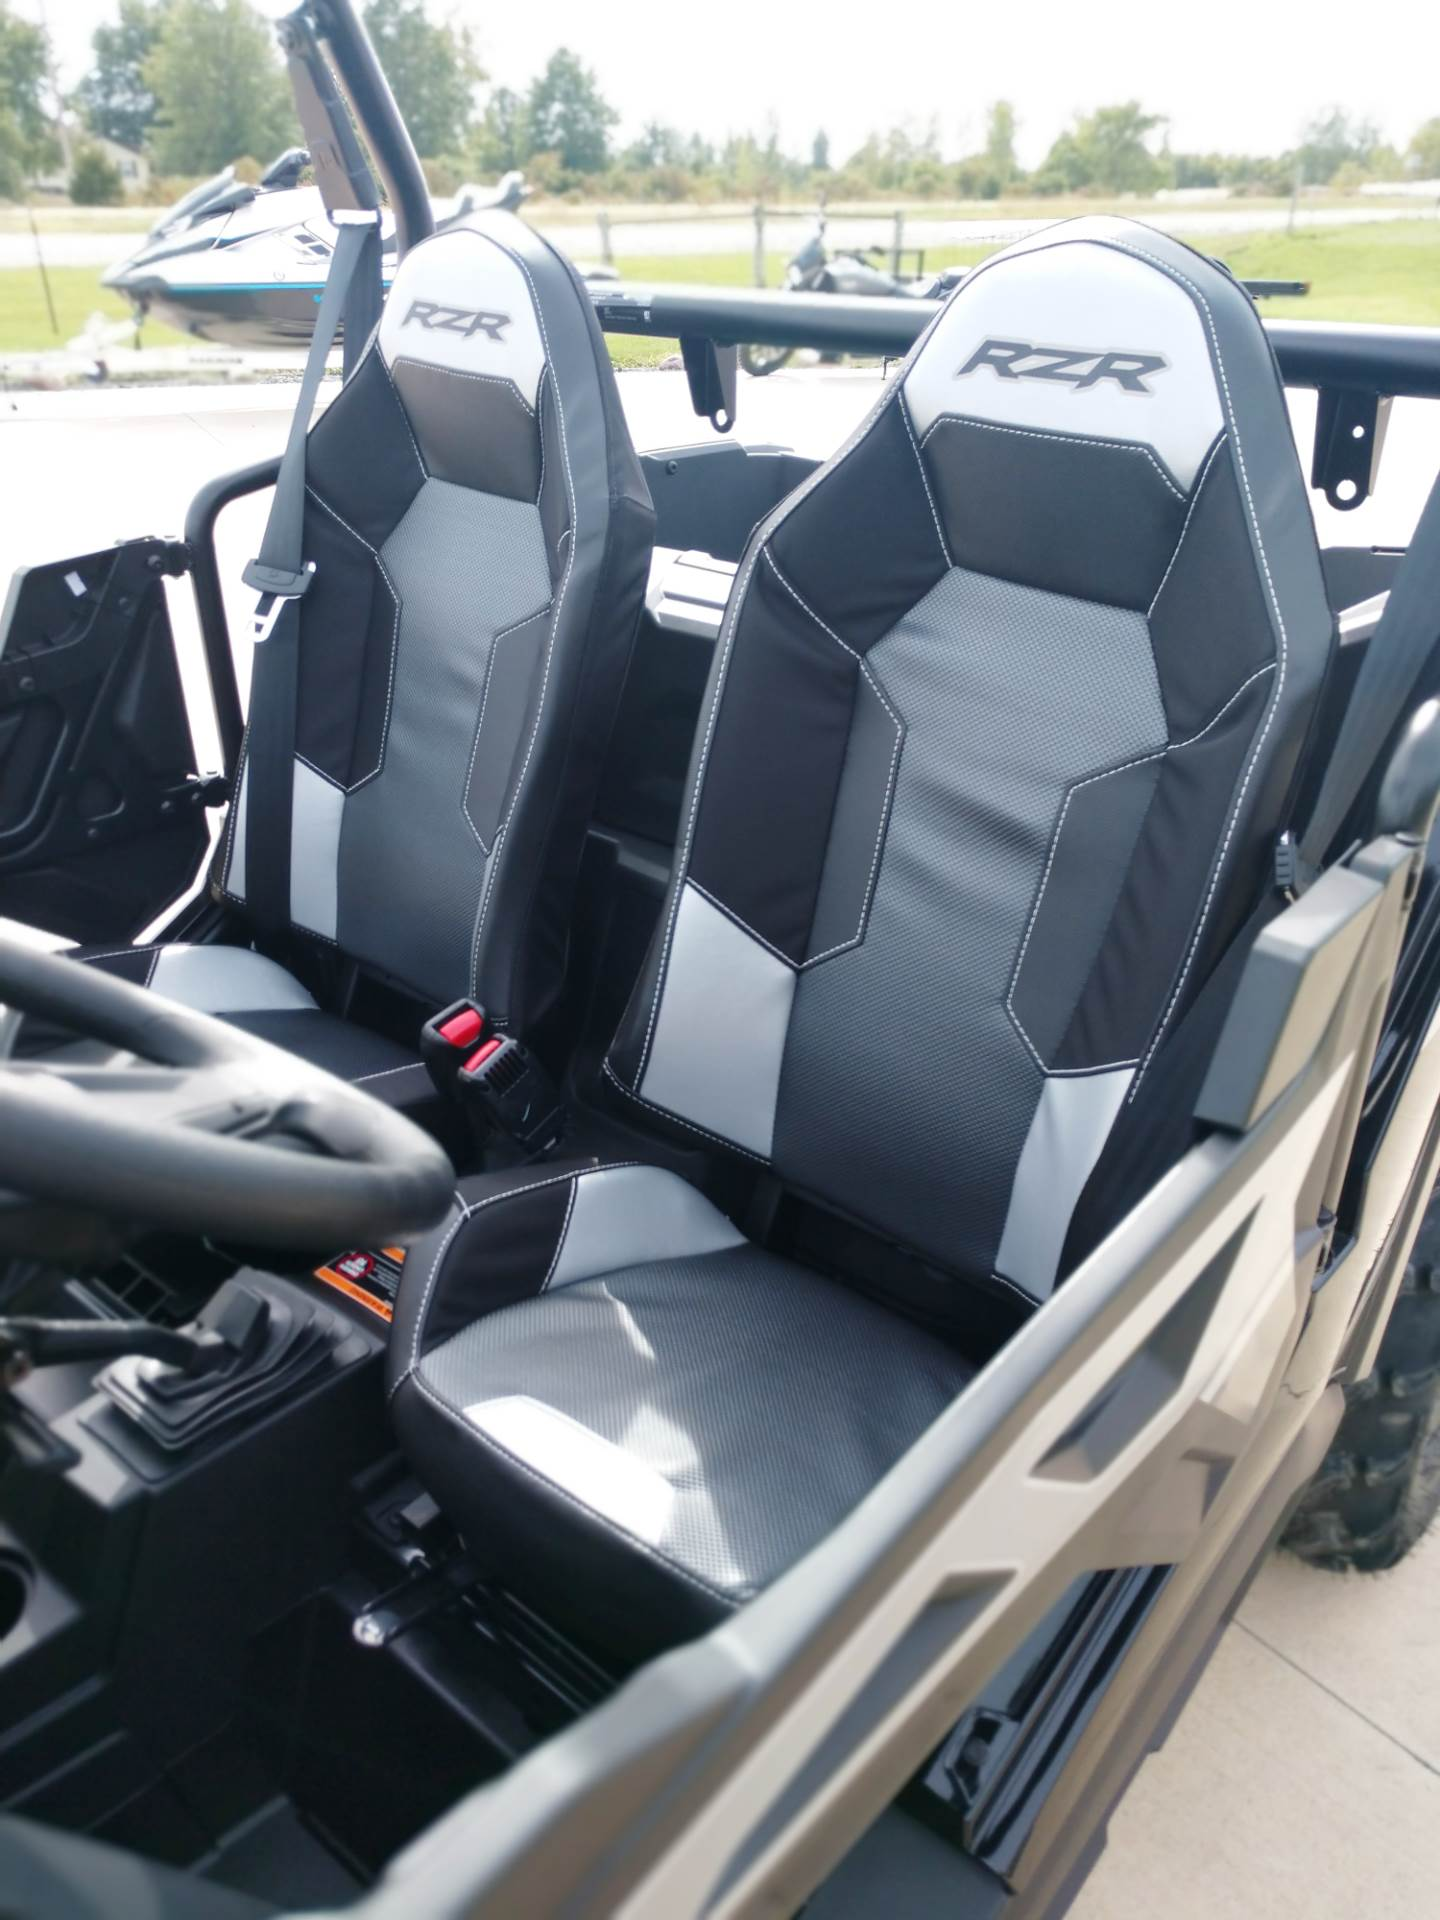 2019 Polaris RZR 900 EPS in Ottumwa, Iowa - Photo 11